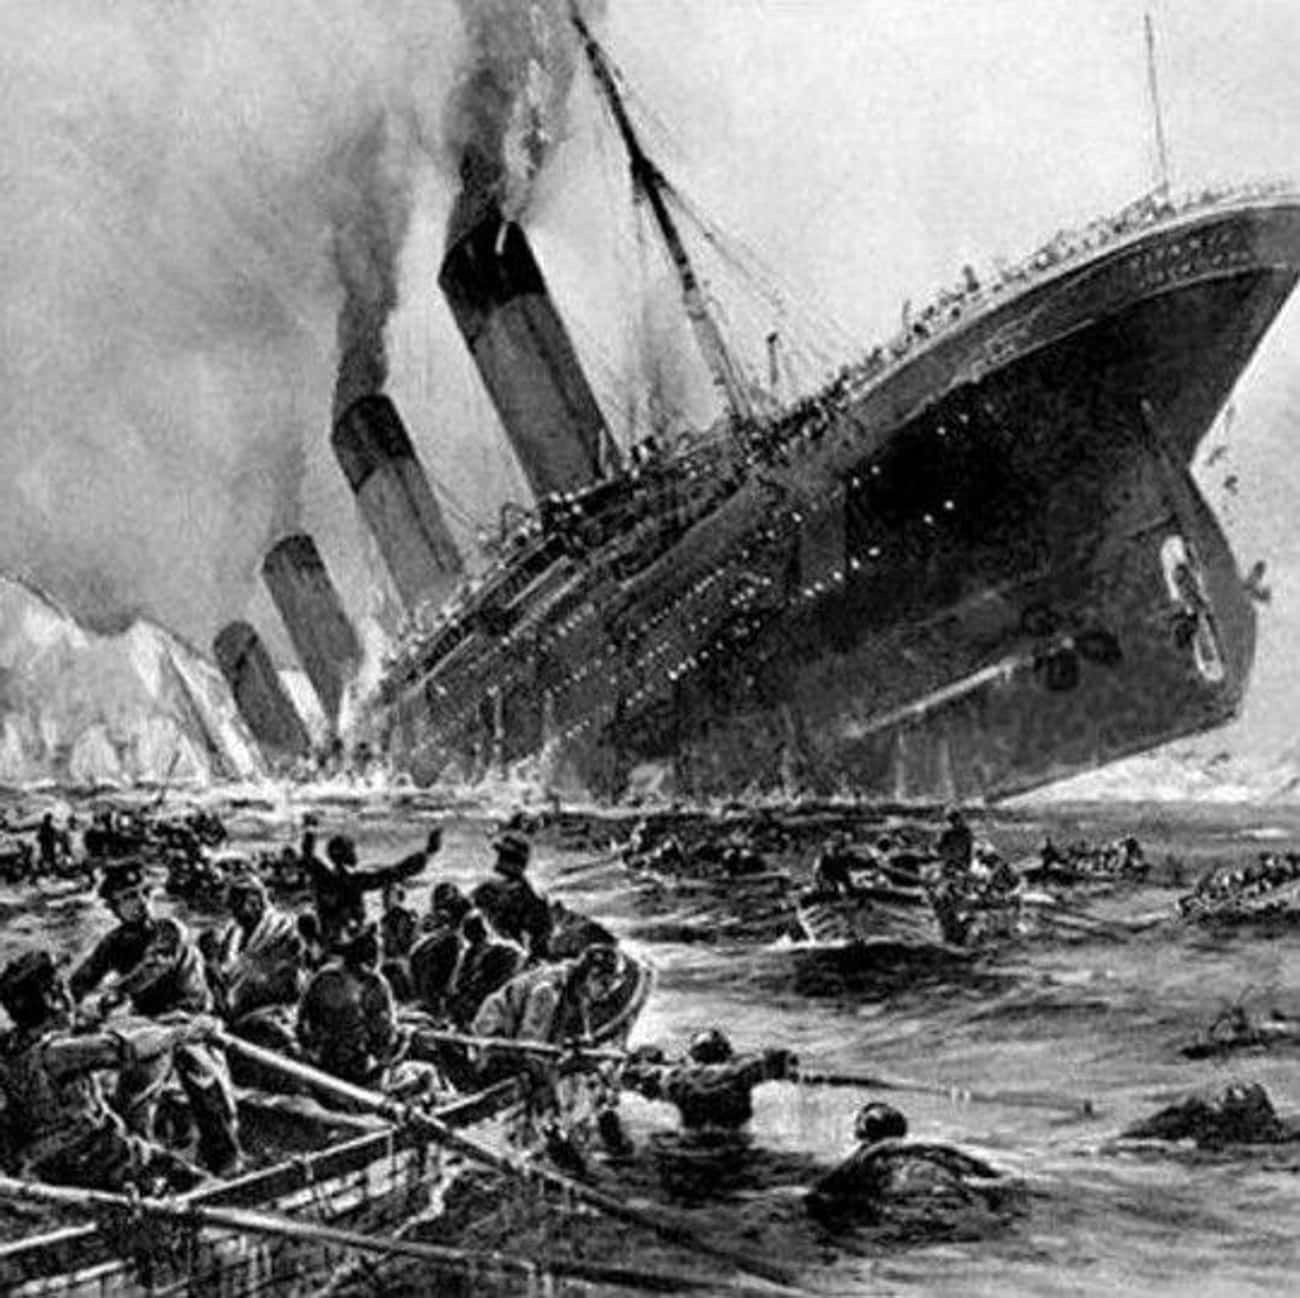 Titanic: Hit An Iceberg is listed (or ranked) 2 on the list The Worst Cruise Ship Disasters